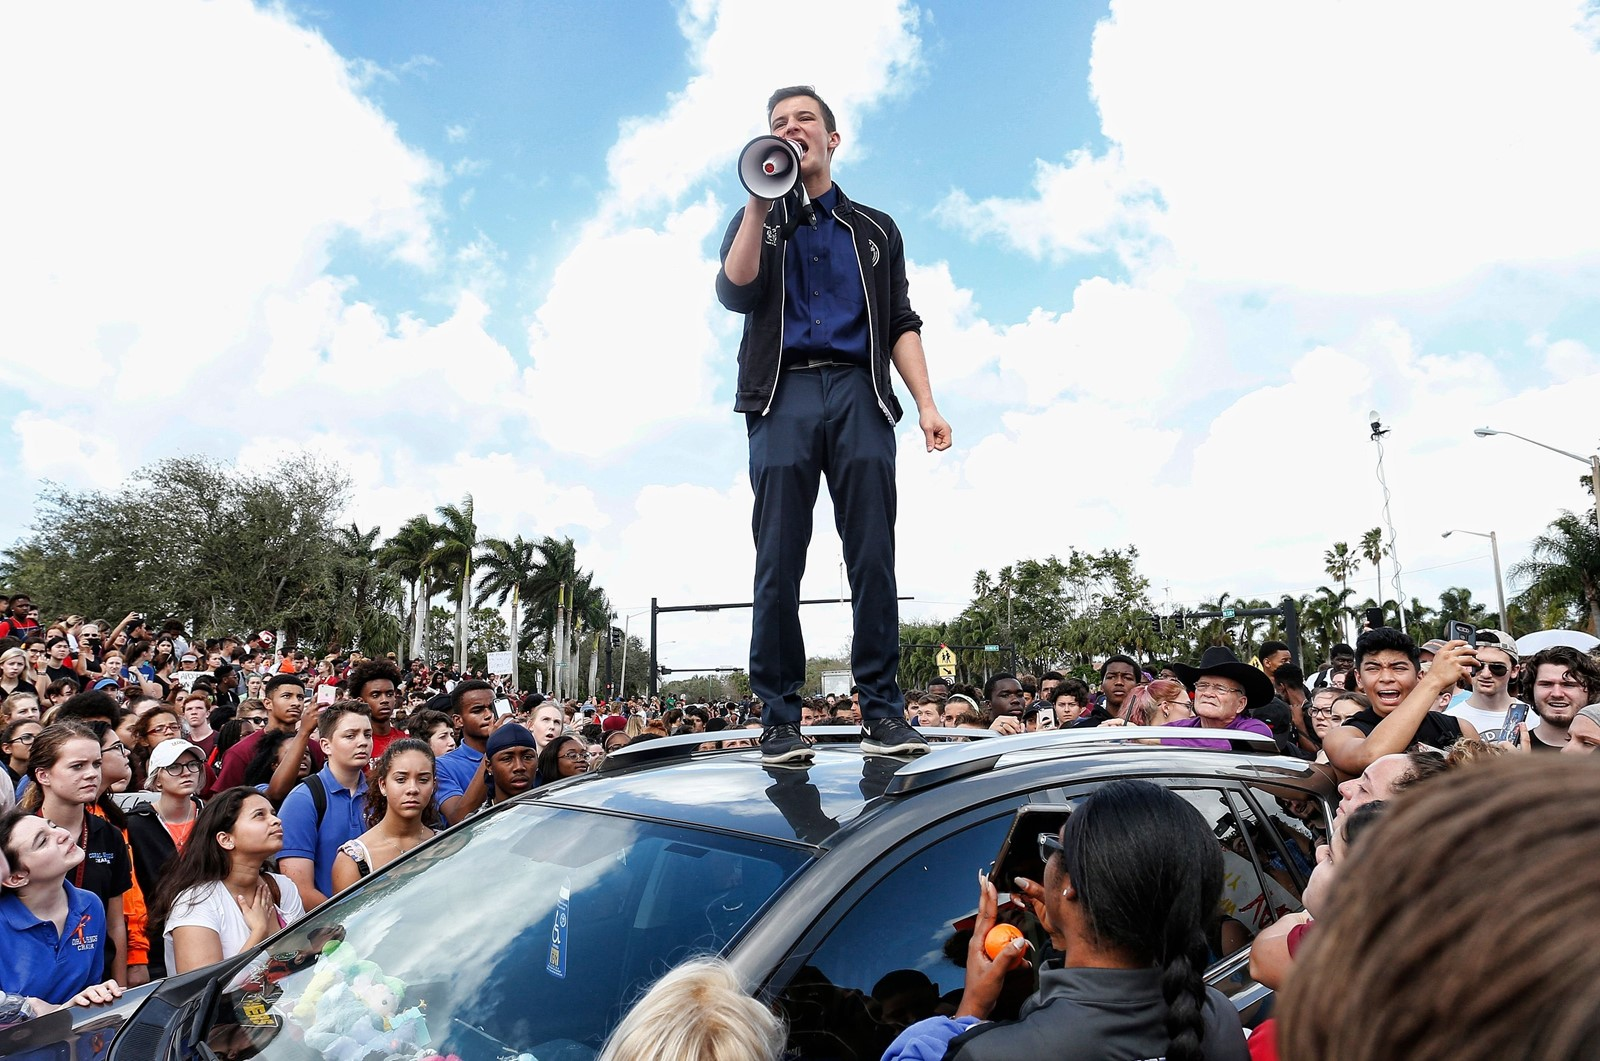 Cameron Kasky, a survivor of the shooting at Marjory Stoneman, speaks to other students at a rally on Wednesday in Parkland, Florida. — Photograph: Rhona Wise/Agence France-Presse/Getty Images.